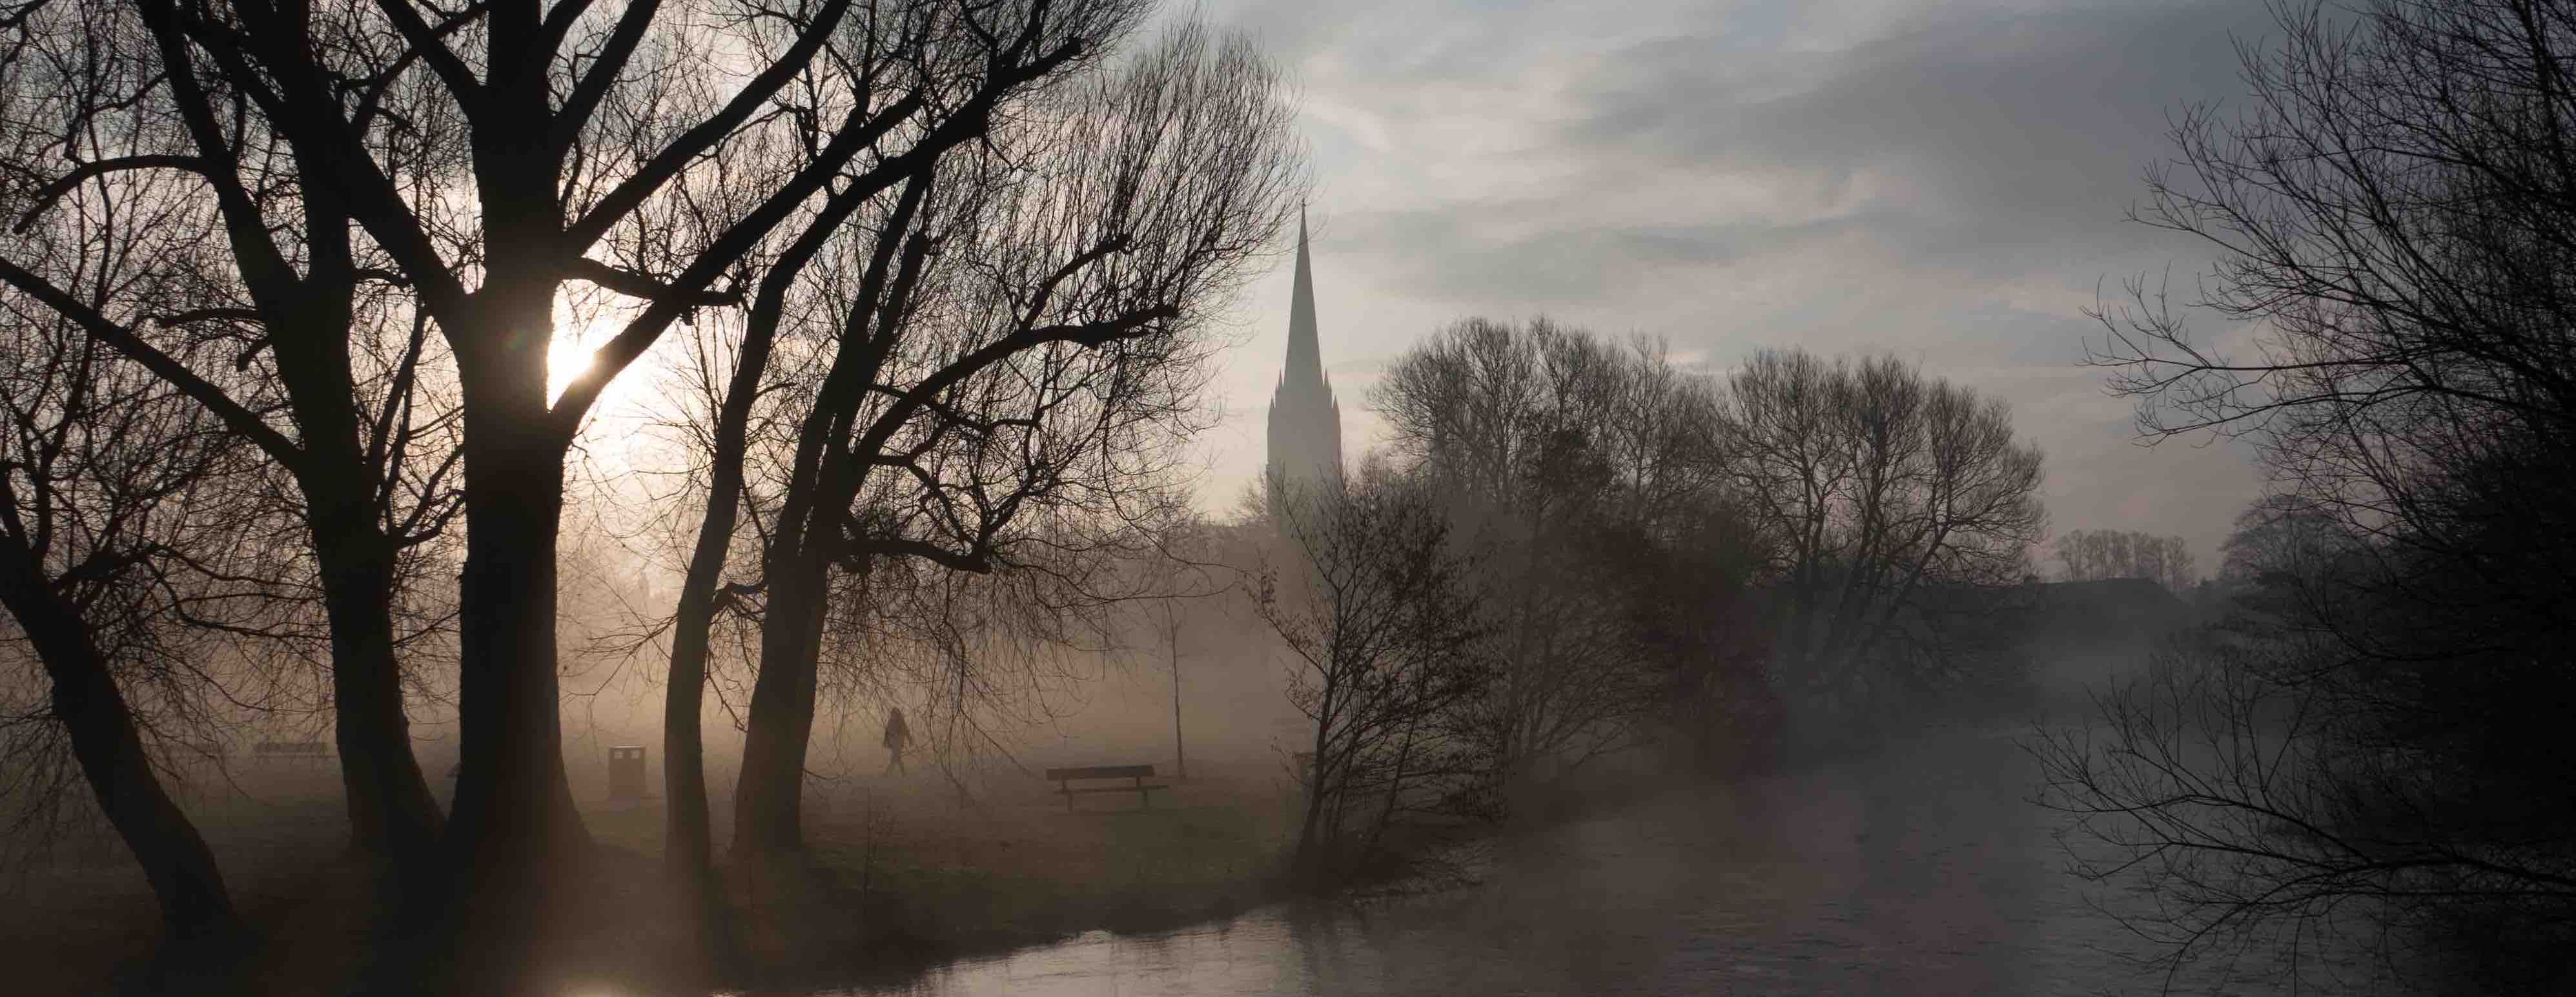 Salisbury, where Sergei and Yulia Skripal were targeted with a lethal nerve agent (Photo: Matt Cardy/Getty)